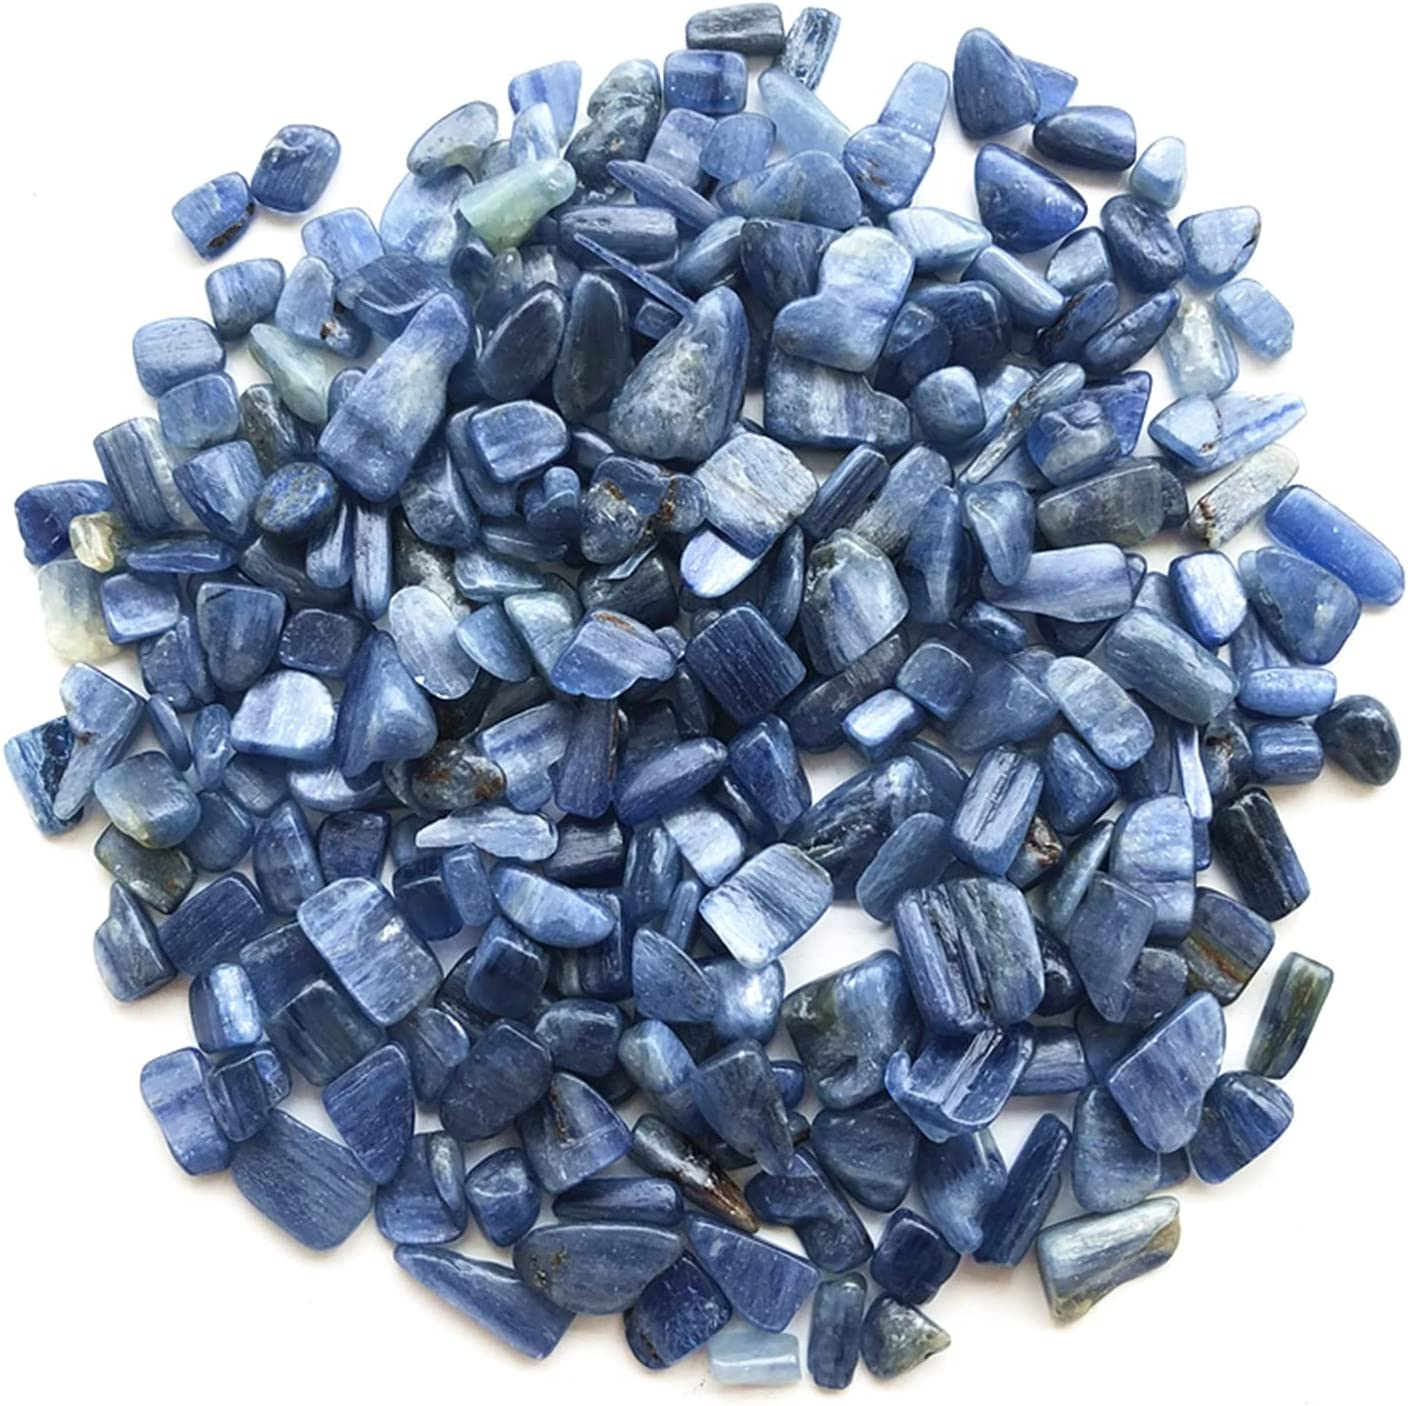 AILIDON Gravel 50g Natural Rough Kyanite Max 47% SEAL limited product OFF Mine Crystal Blue Stone